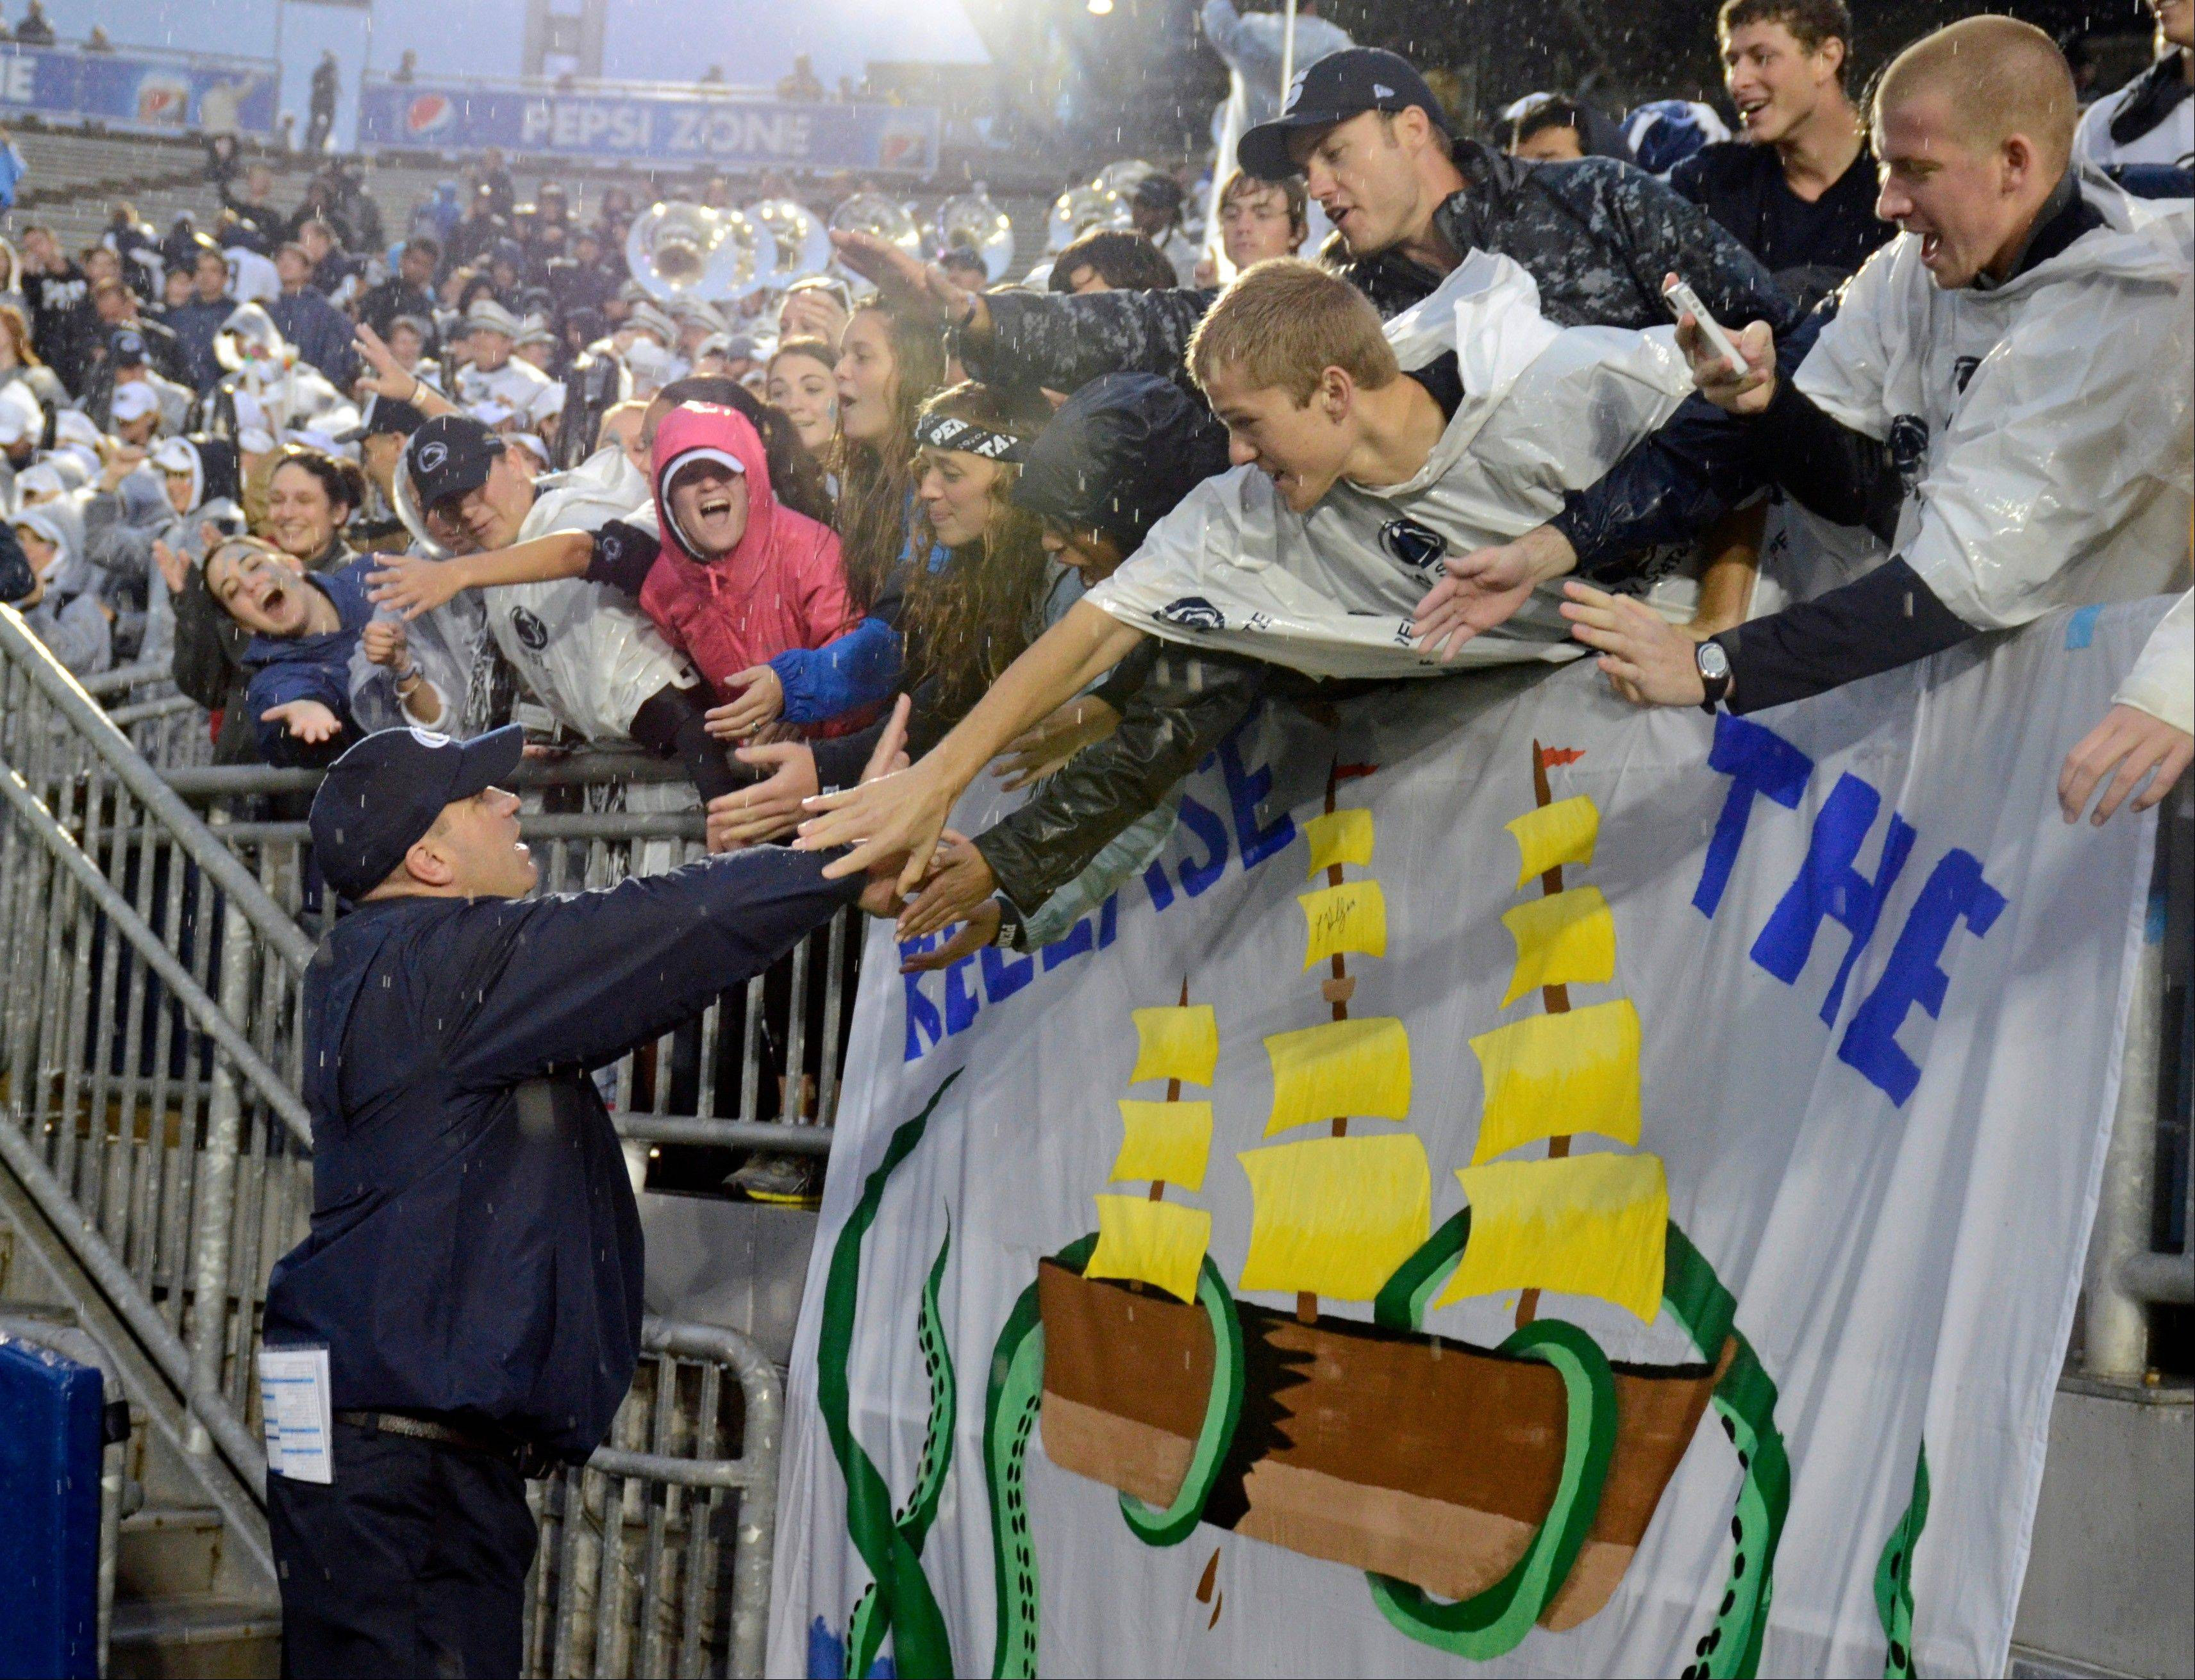 Penn State head coach Bill O' Brien, left, thanks fans in the student section of Beaver Stadium after defeating Kent State 34-0 on Saturday in State College, Pa.